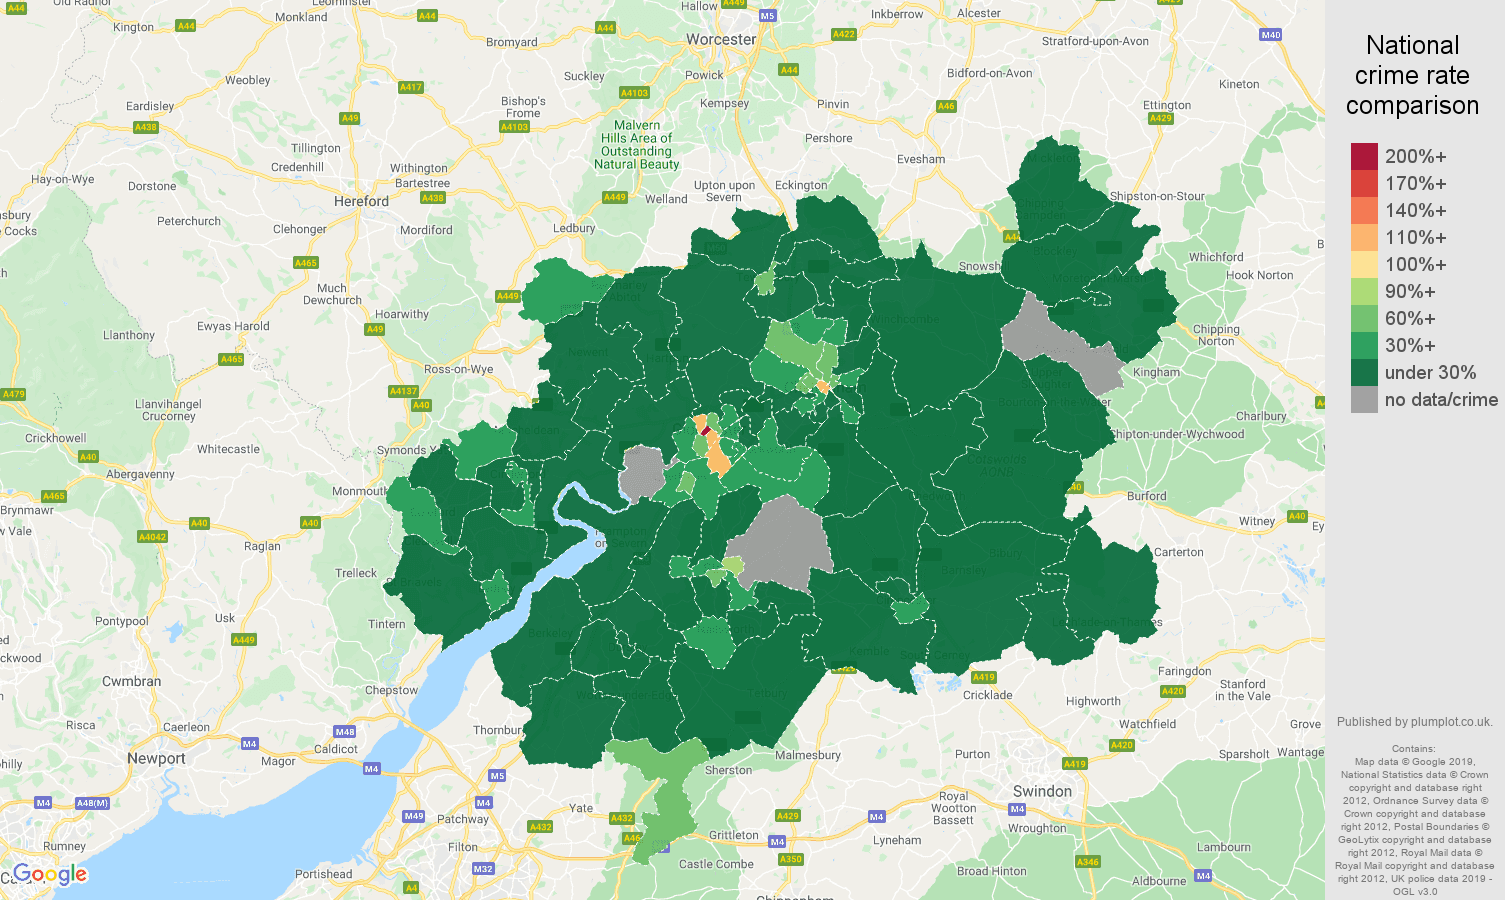 Gloucester public order crime rate comparison map